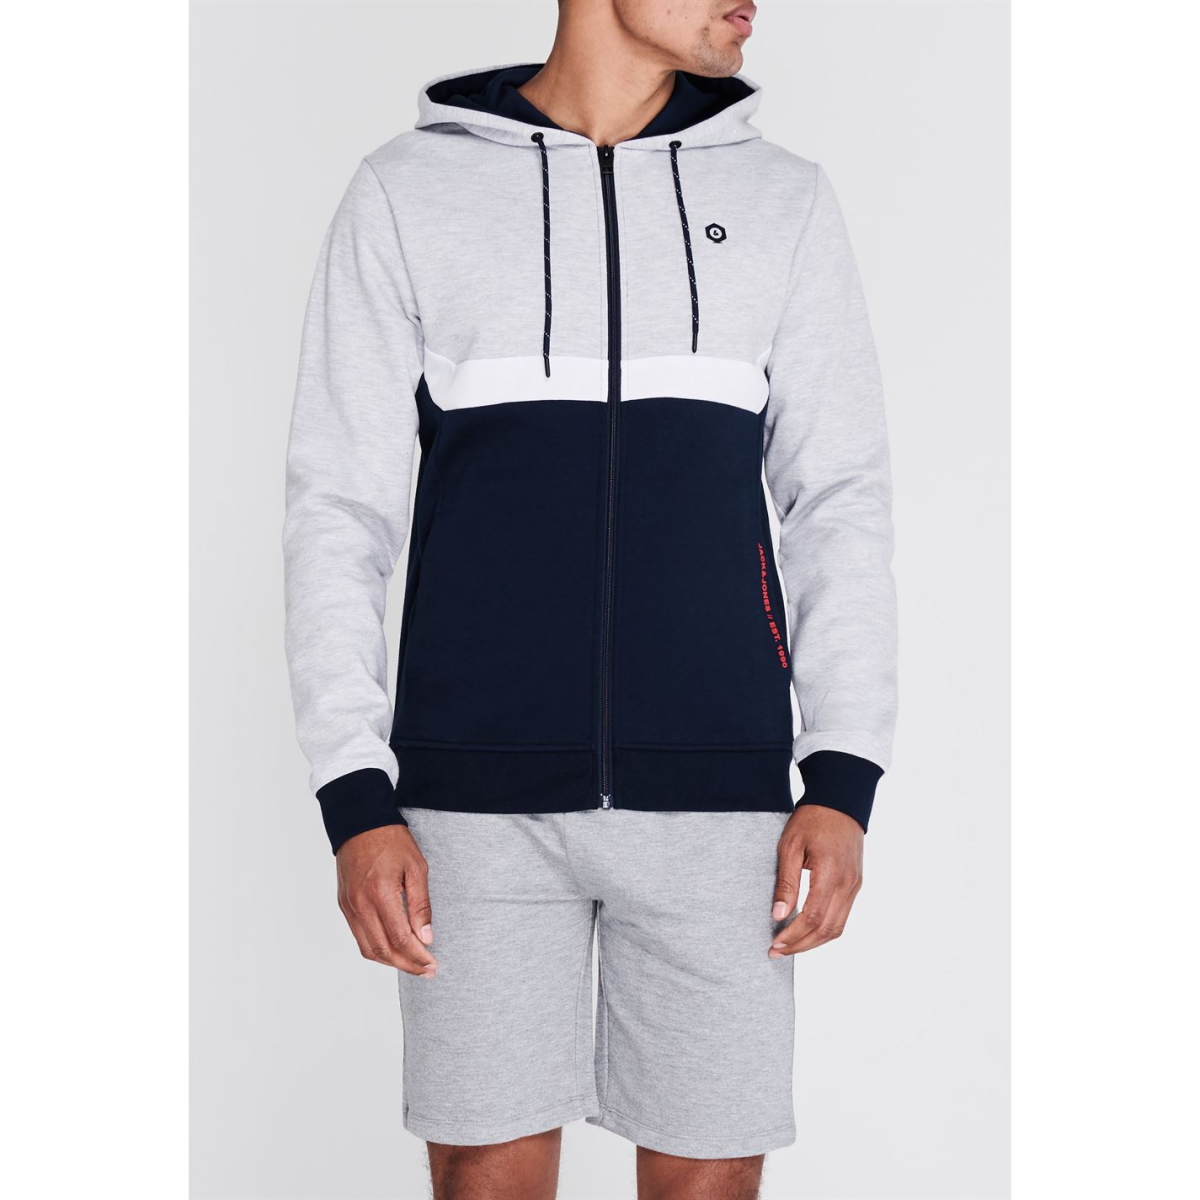 Jack And Jones Kapuzenpullover Kapuzenjacke Herren